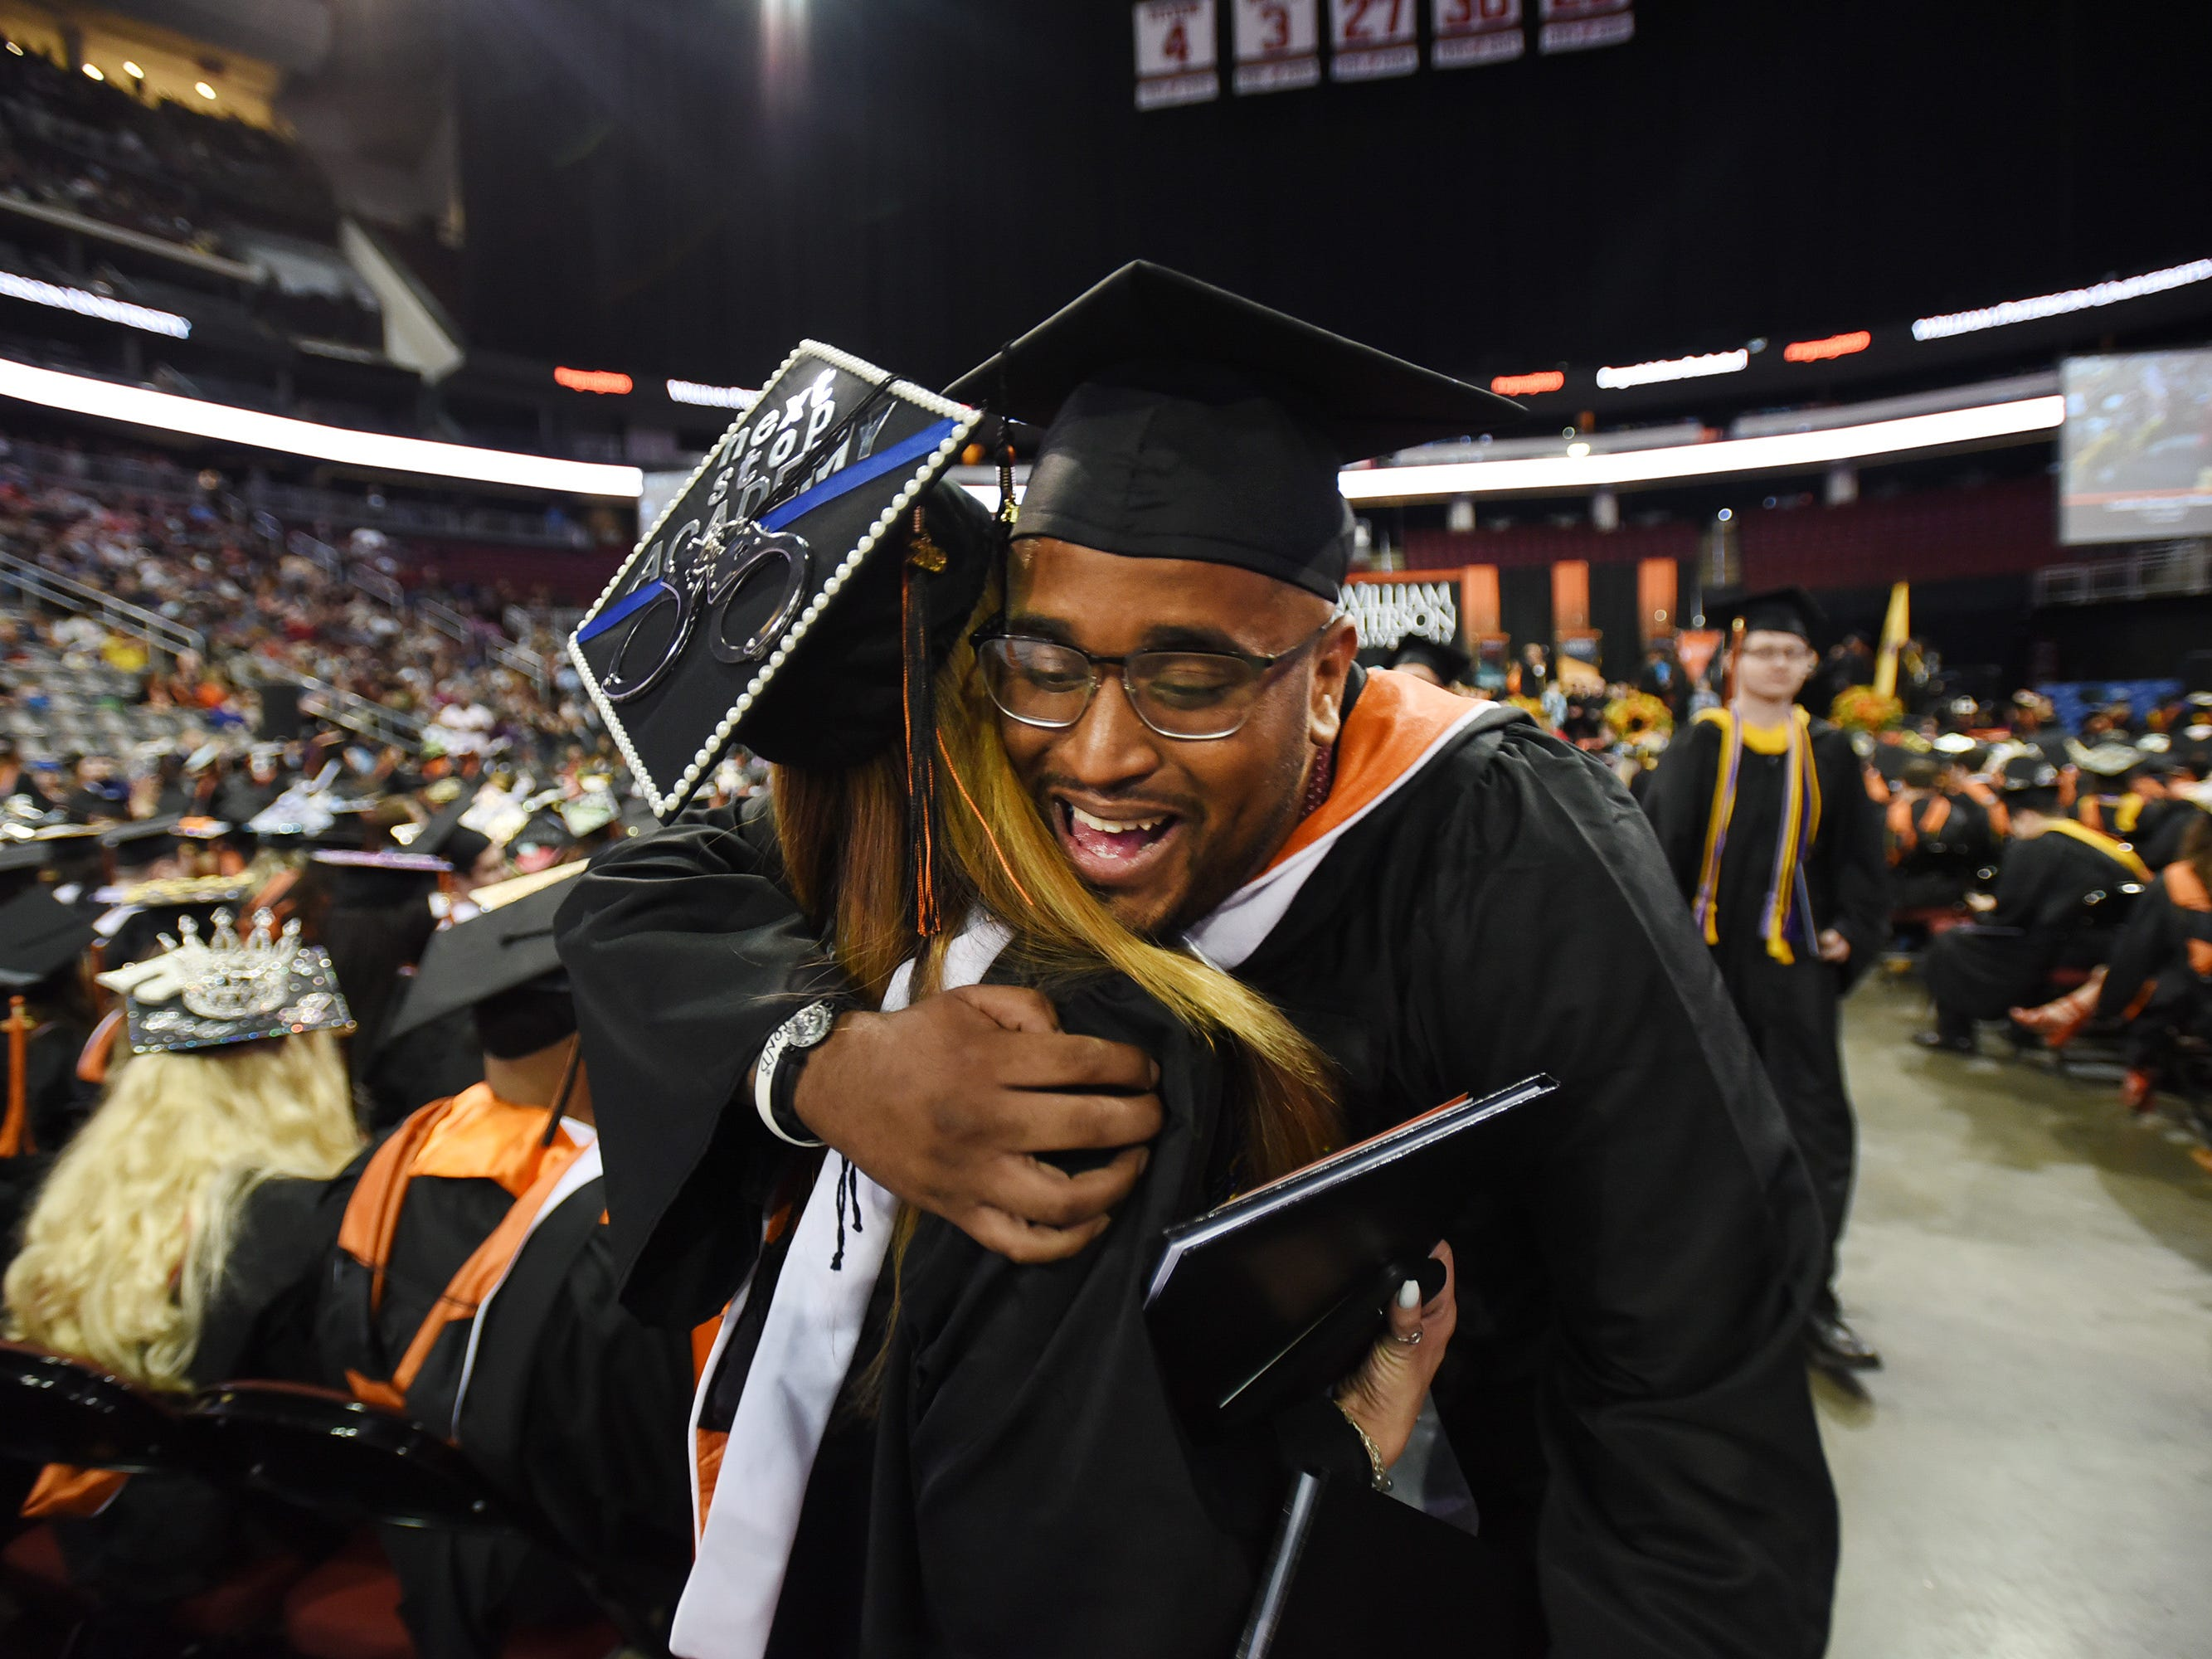 Micah Seerattan of Teaneck, Major in Sociology, receives a hug from a friend during the William Paterson University 2019 Commencement at the Prudential Center in Newark on 05/15/19.